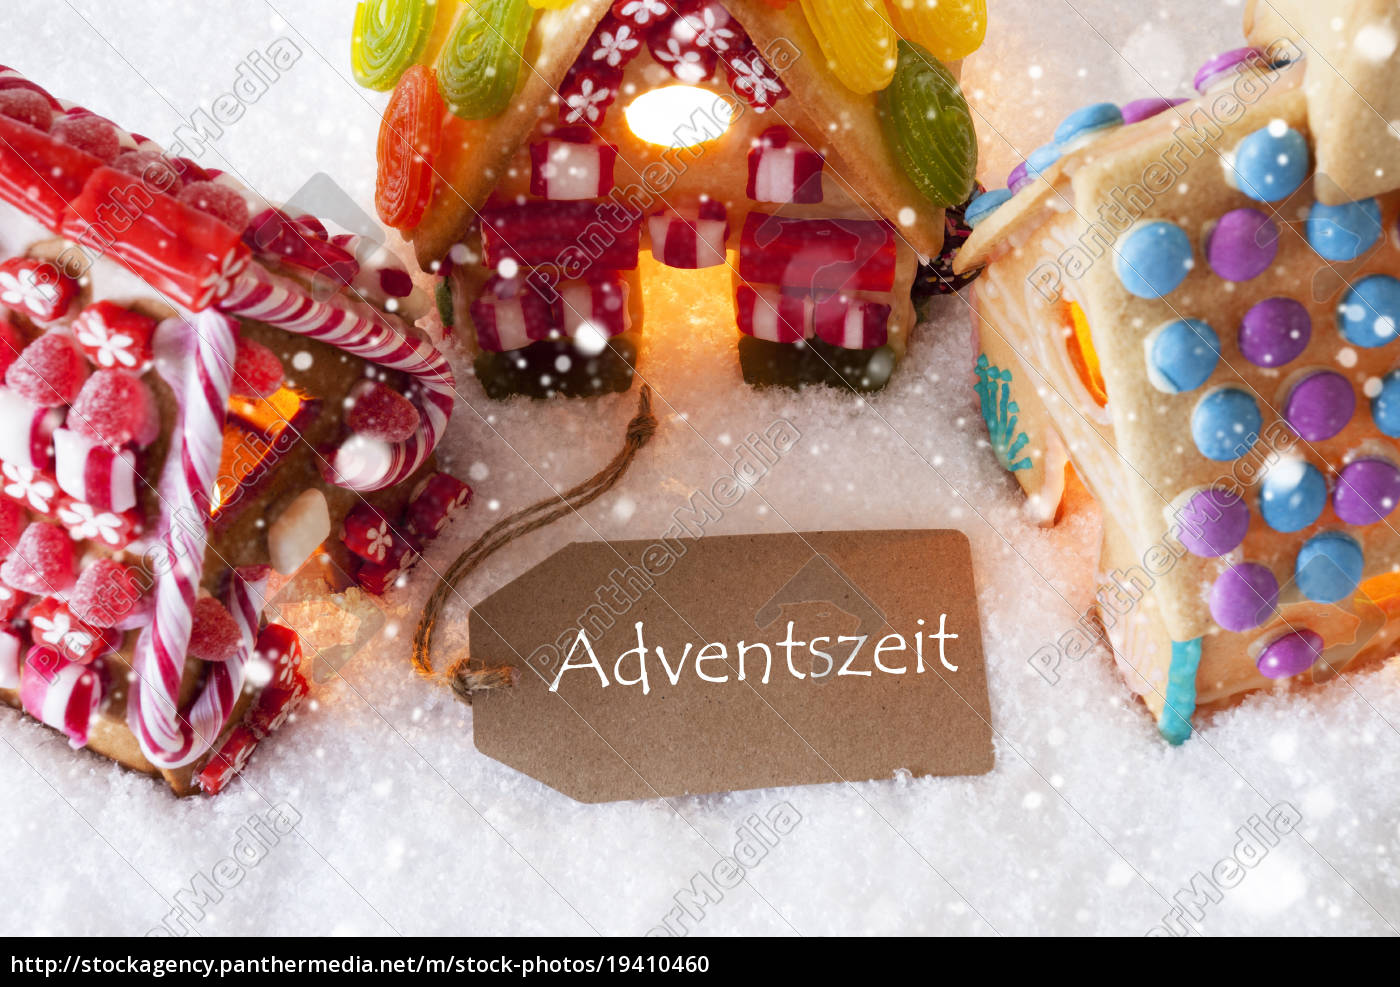 colorful, gingerbread, house, , snowflakes, , adventszeit, means - 19410460